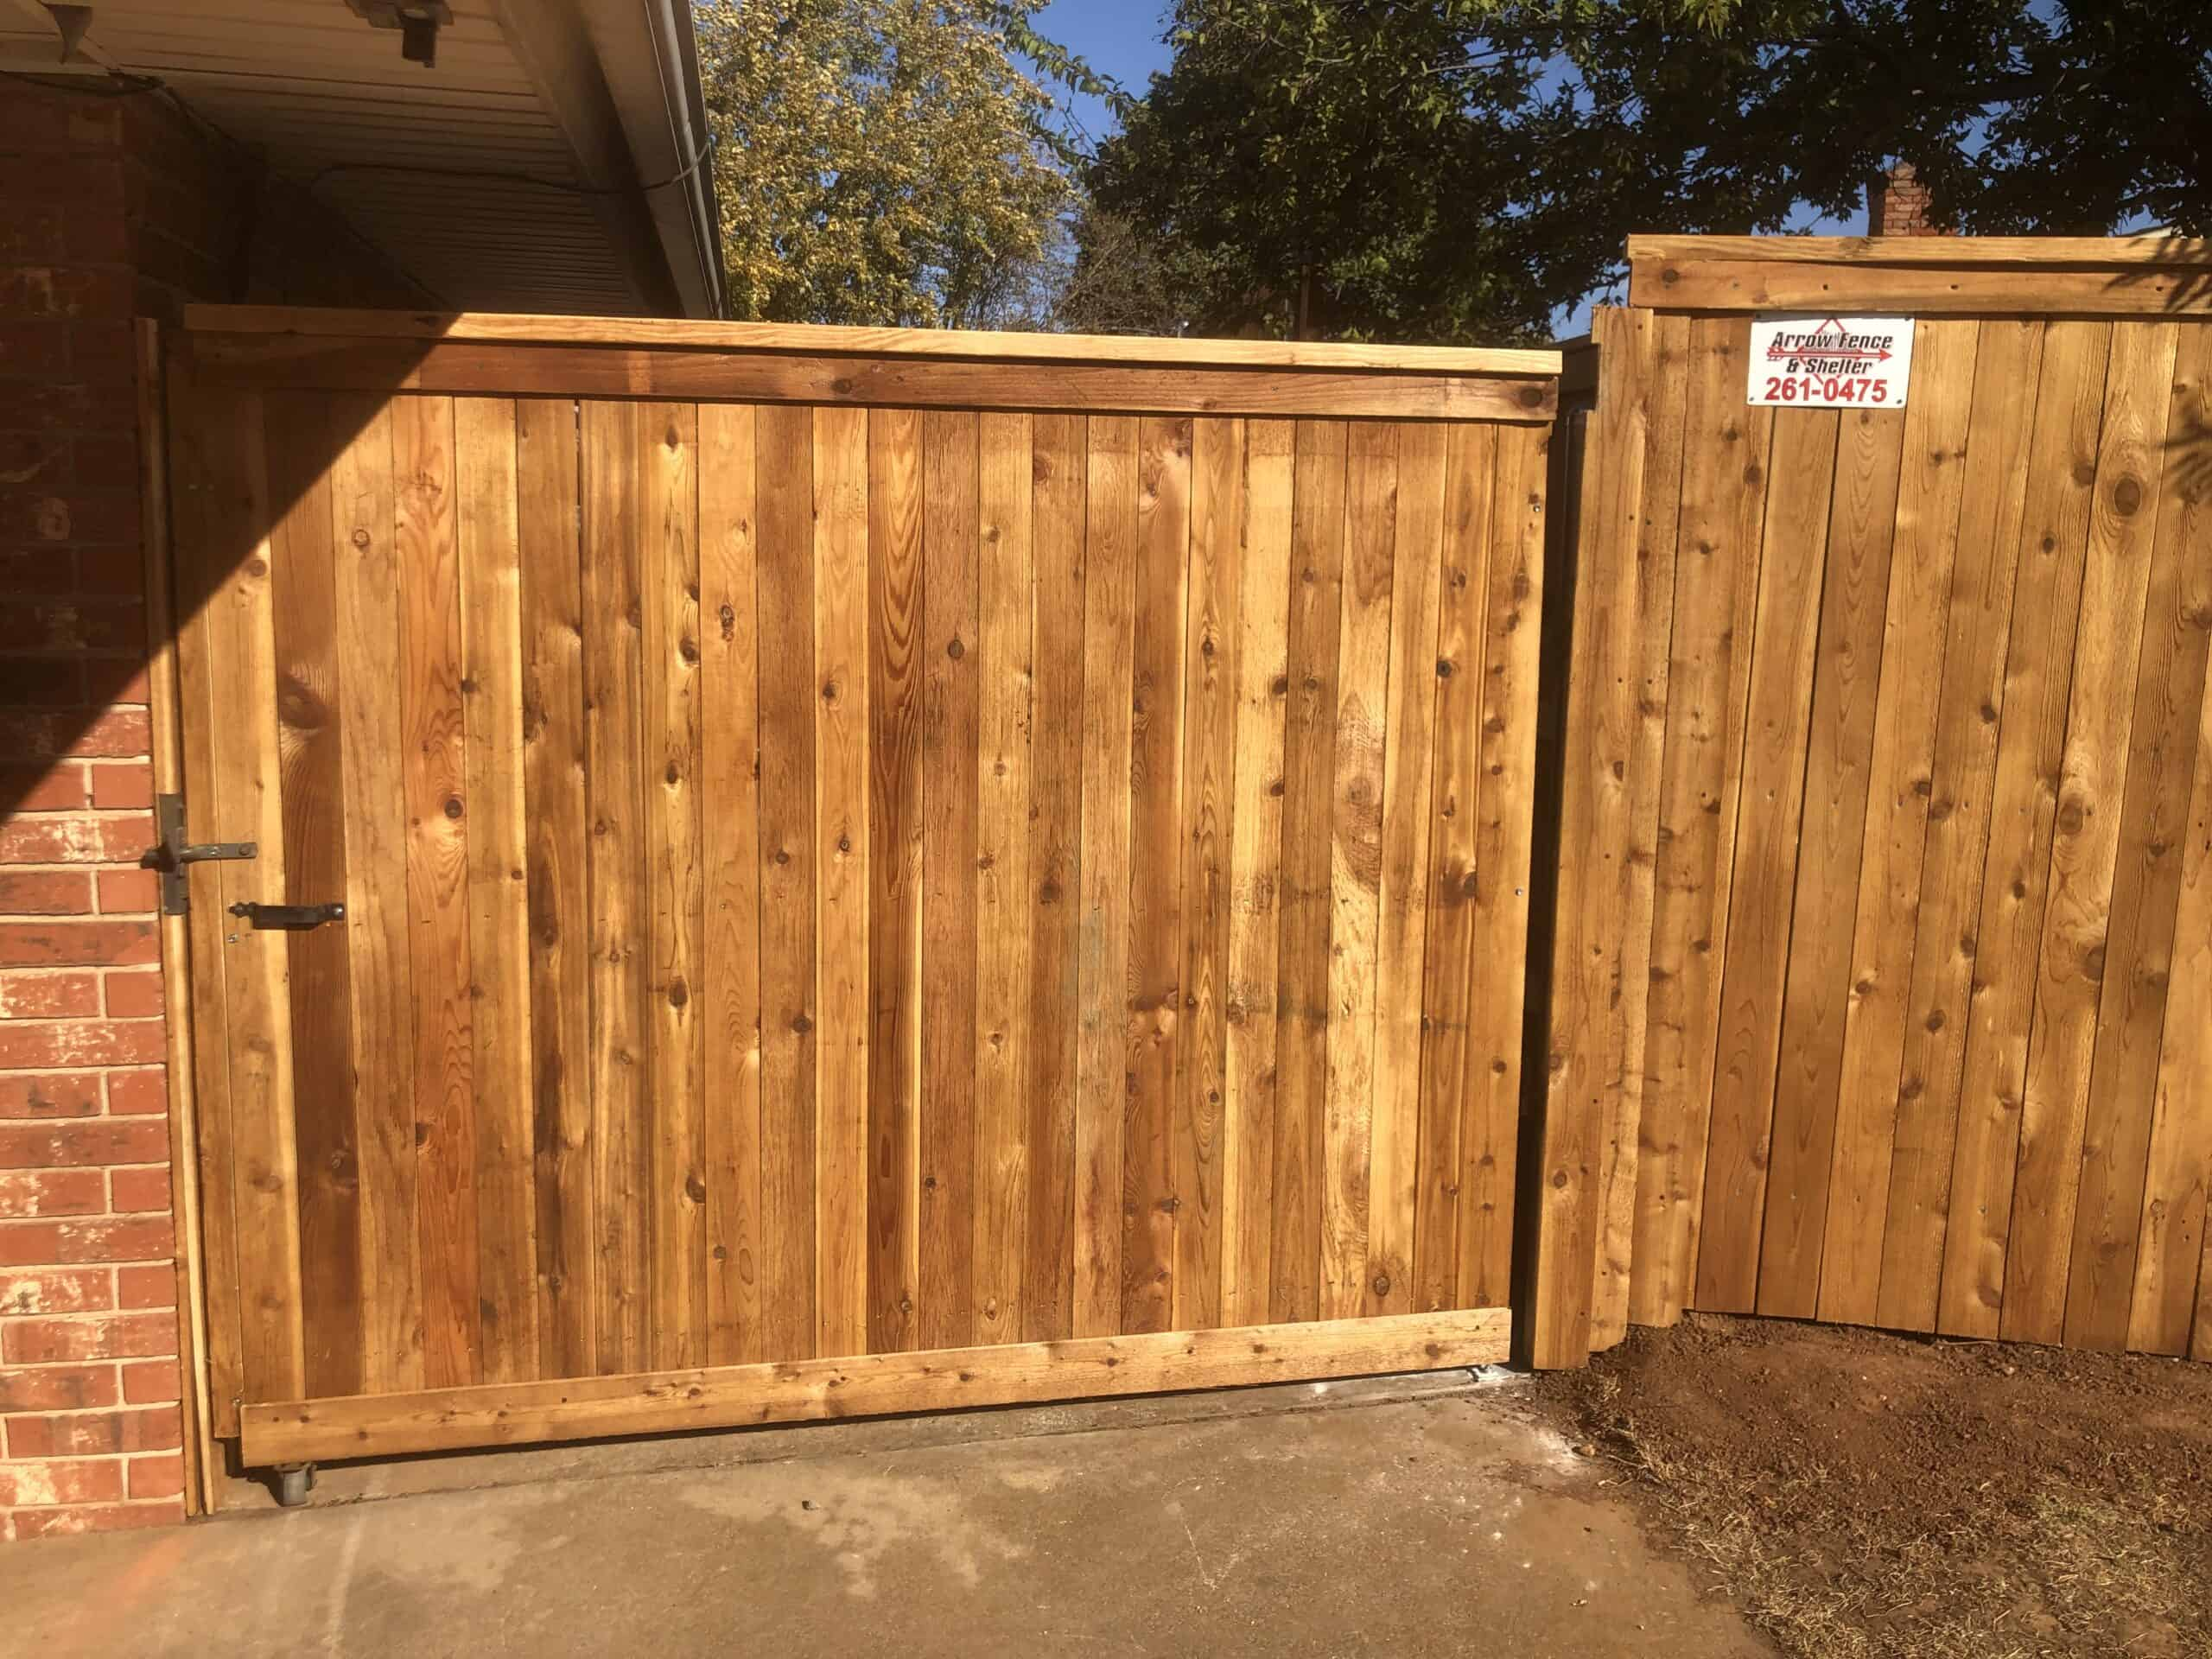 professional privacy fencing services | Automatic Gate Opener Installers Near Me